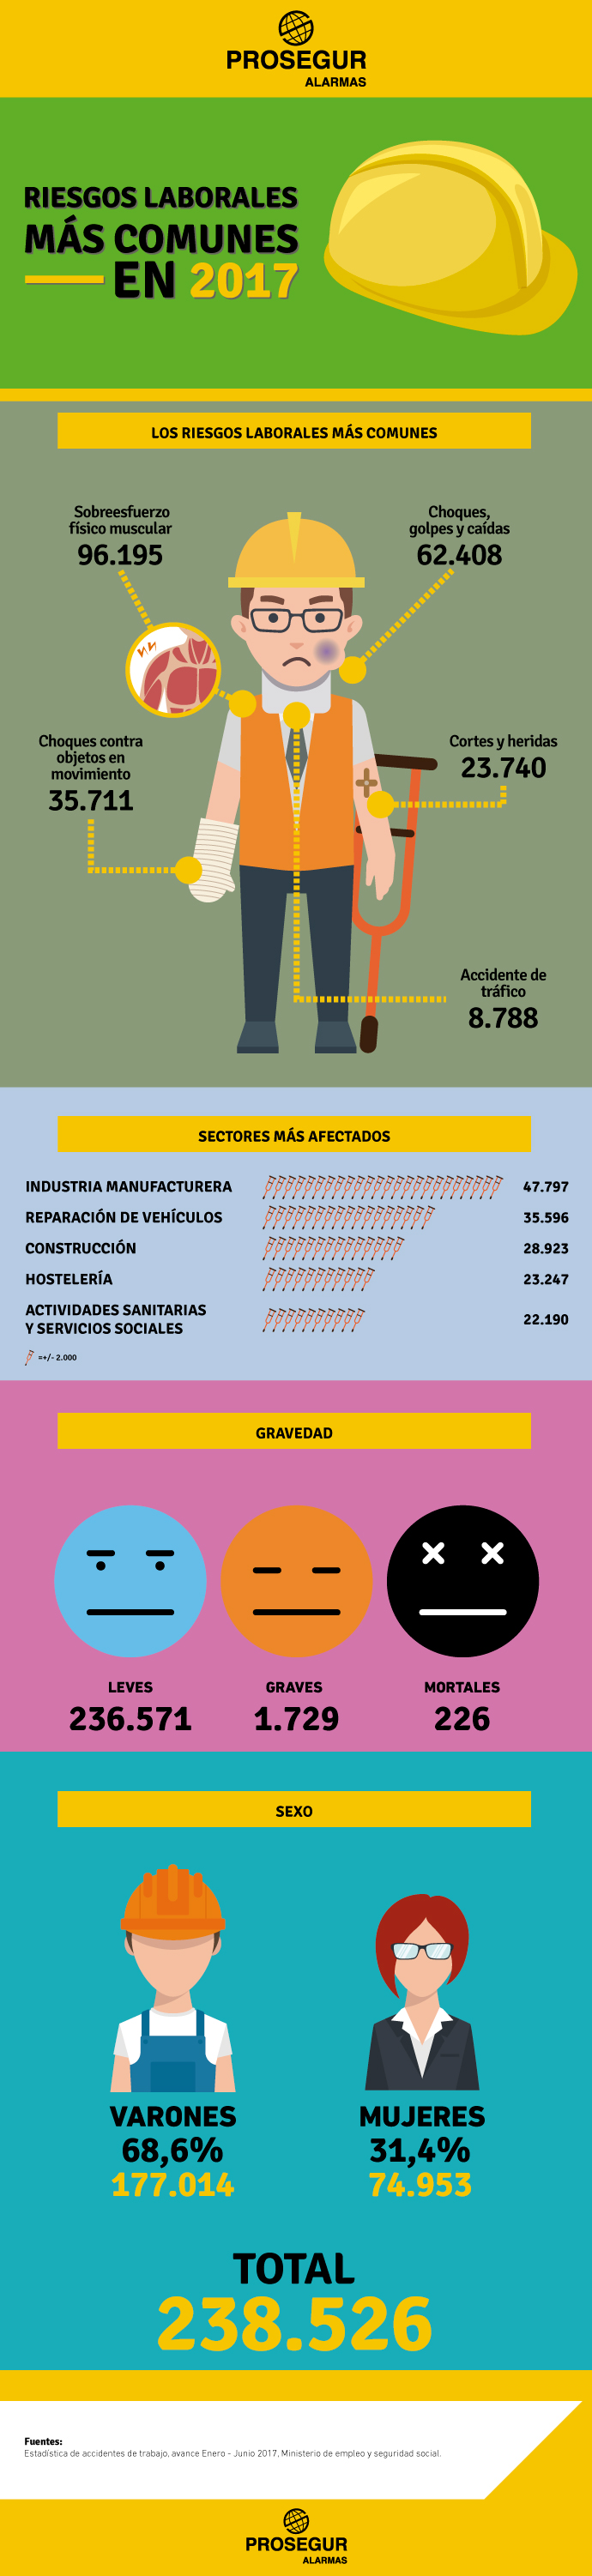 Datos sobre accidentes y riesgos laborales. Blog Prosegur.